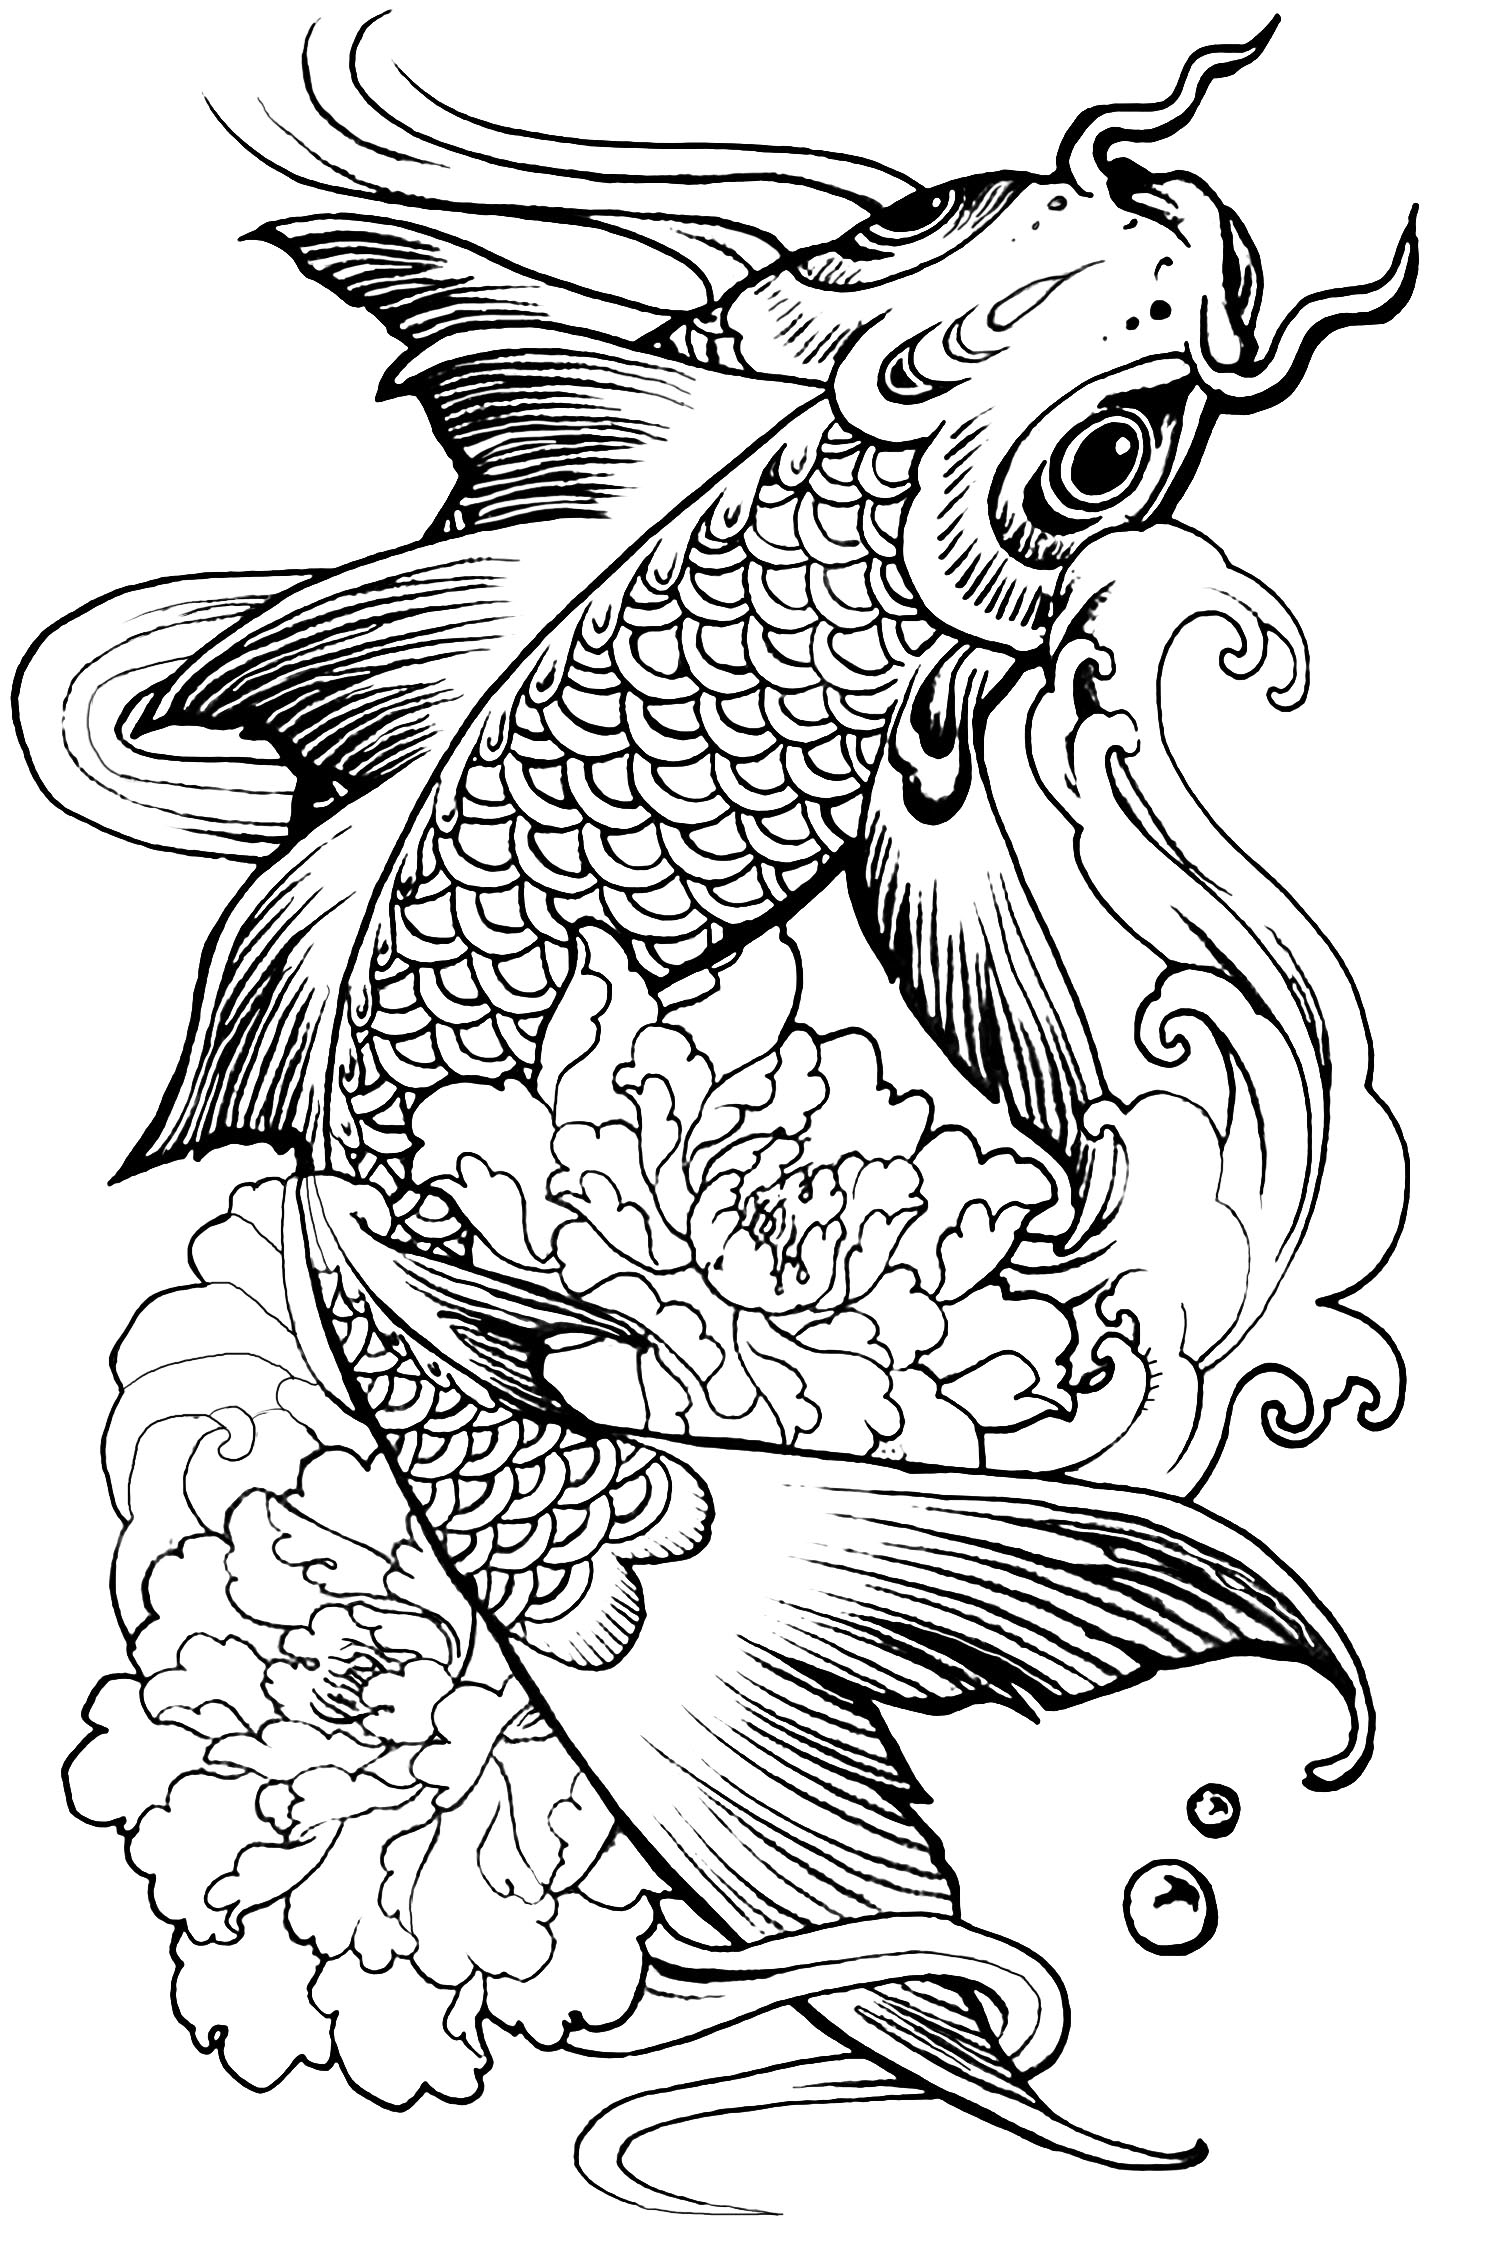 Coloriage Mandala De Poisson.Poisson Carpe Coloriages D Animaux 100 Mandalas Zen Anti Stress